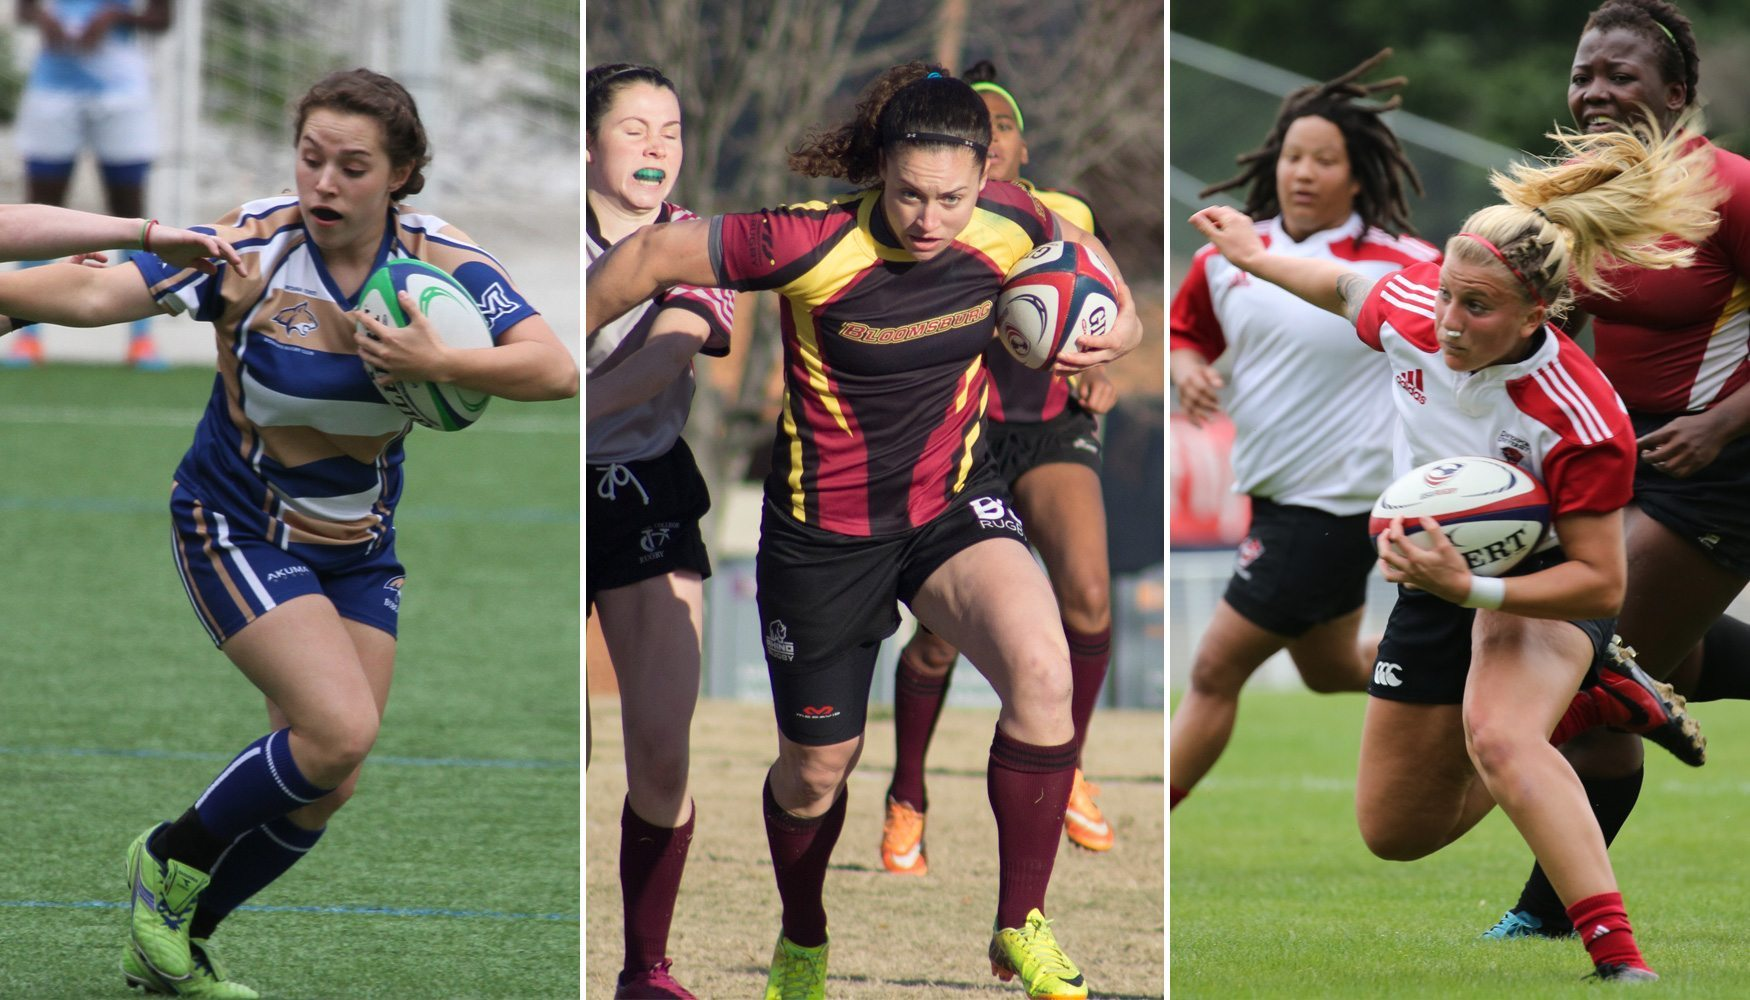 Davenport up for second National Championship in first Women's DII bracket at College 7s